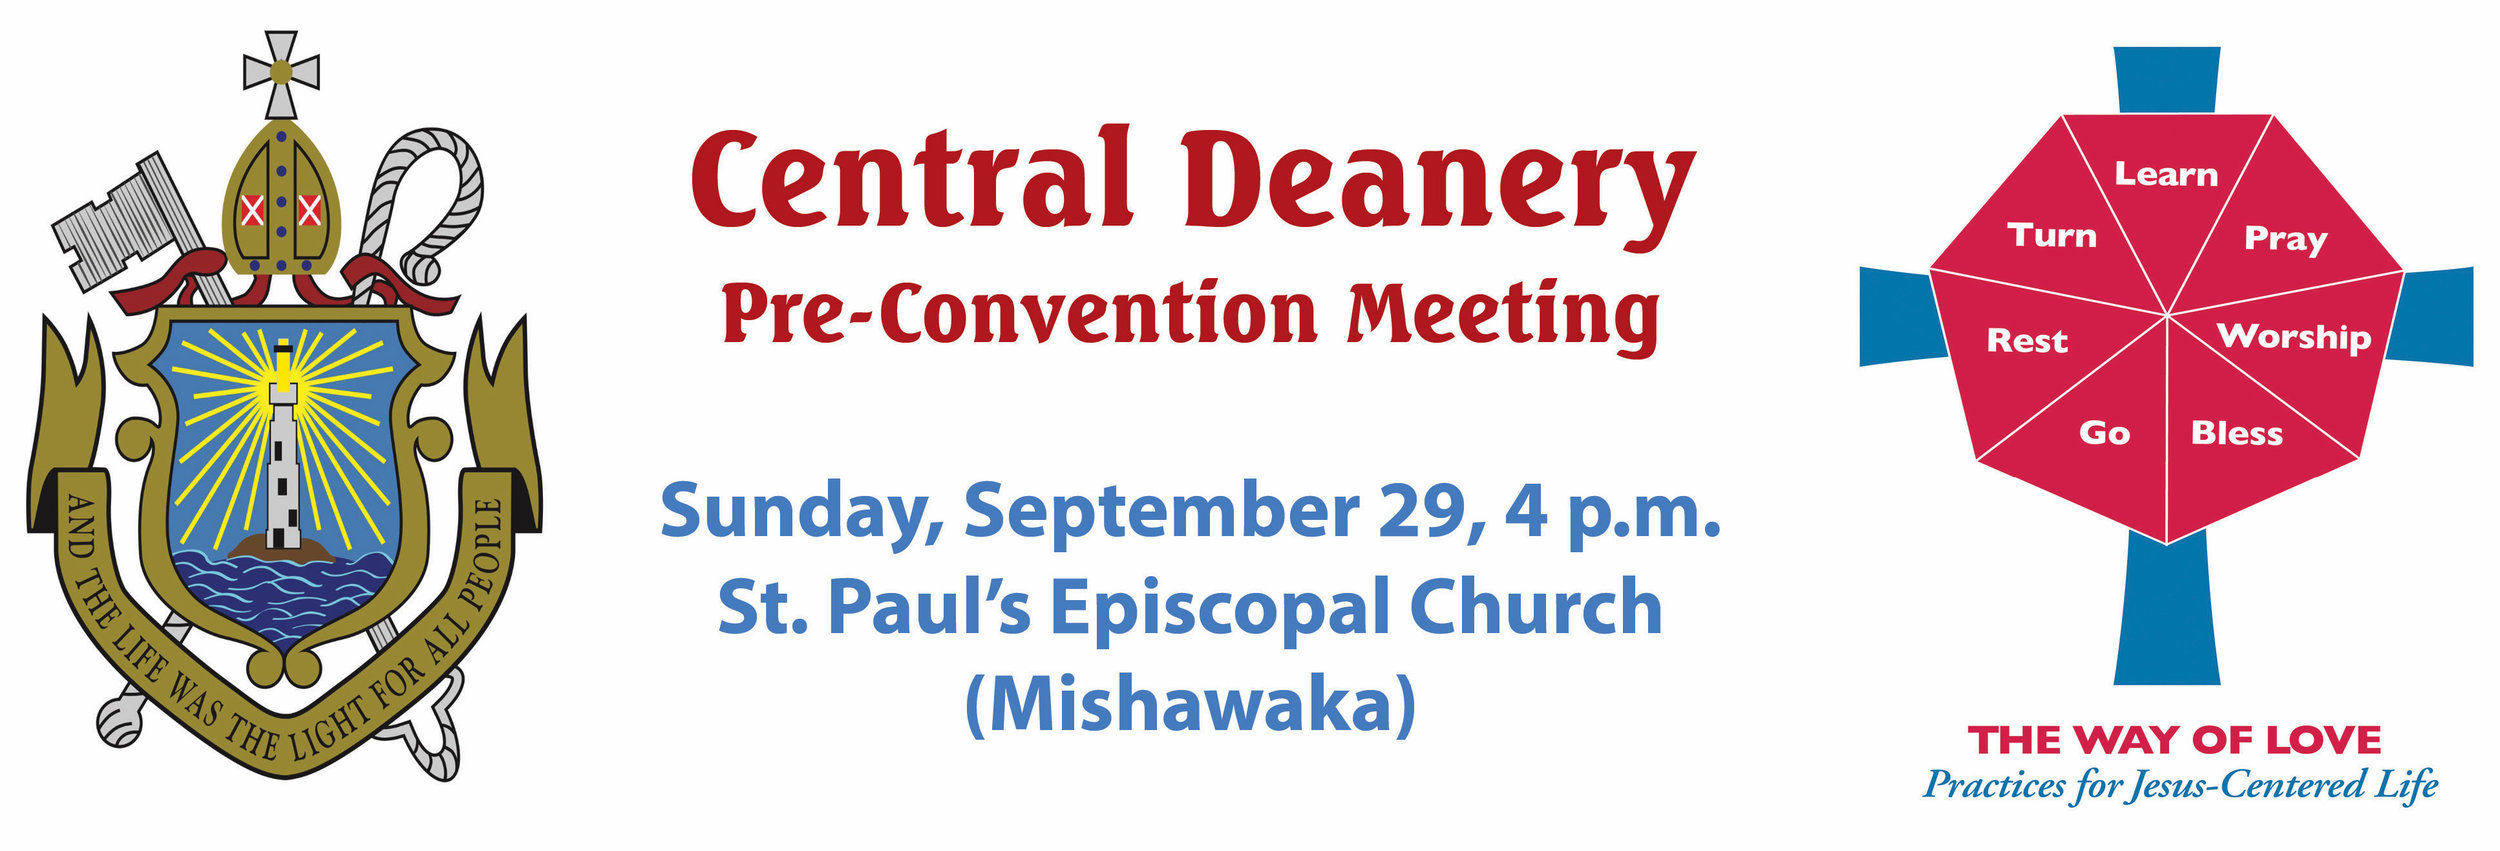 2019 Central Deanery DioCon Graphic.jpg